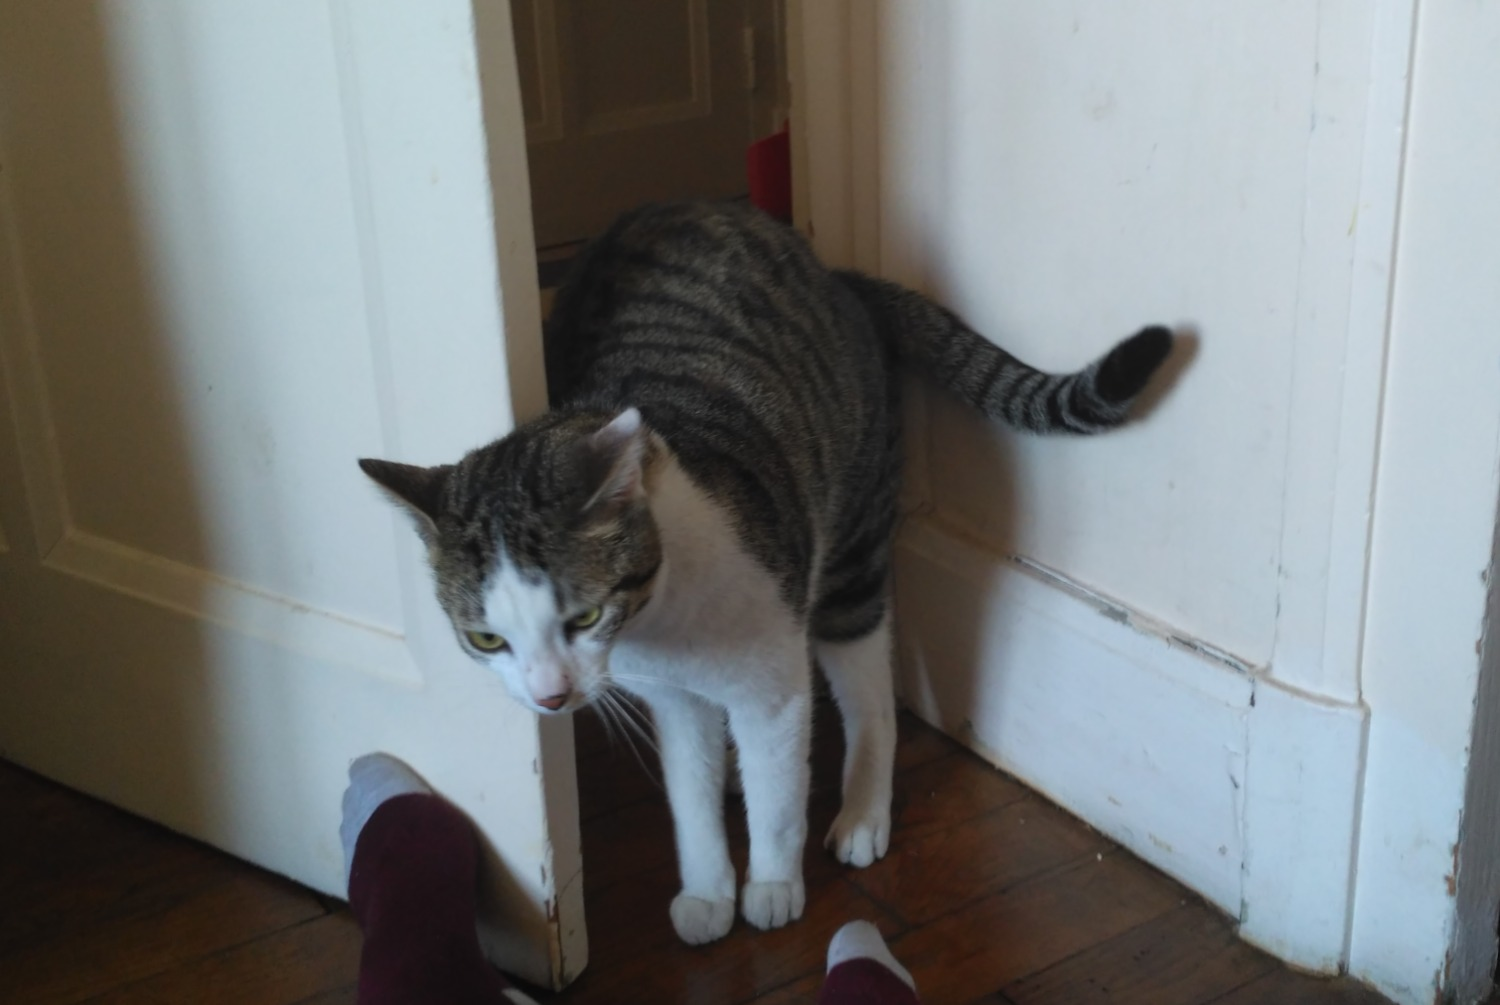 Discovery alert Cat Female , 3 years Lyon 3e Arrondissement France